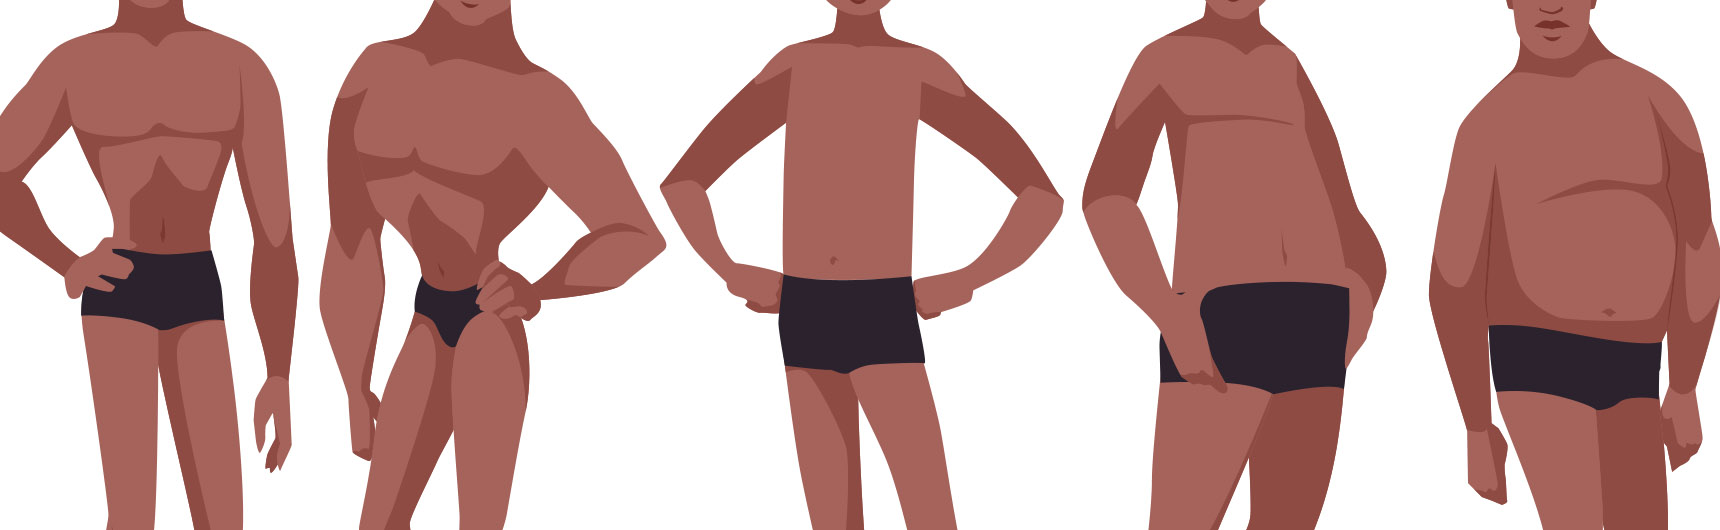 Why You Need New Underwear